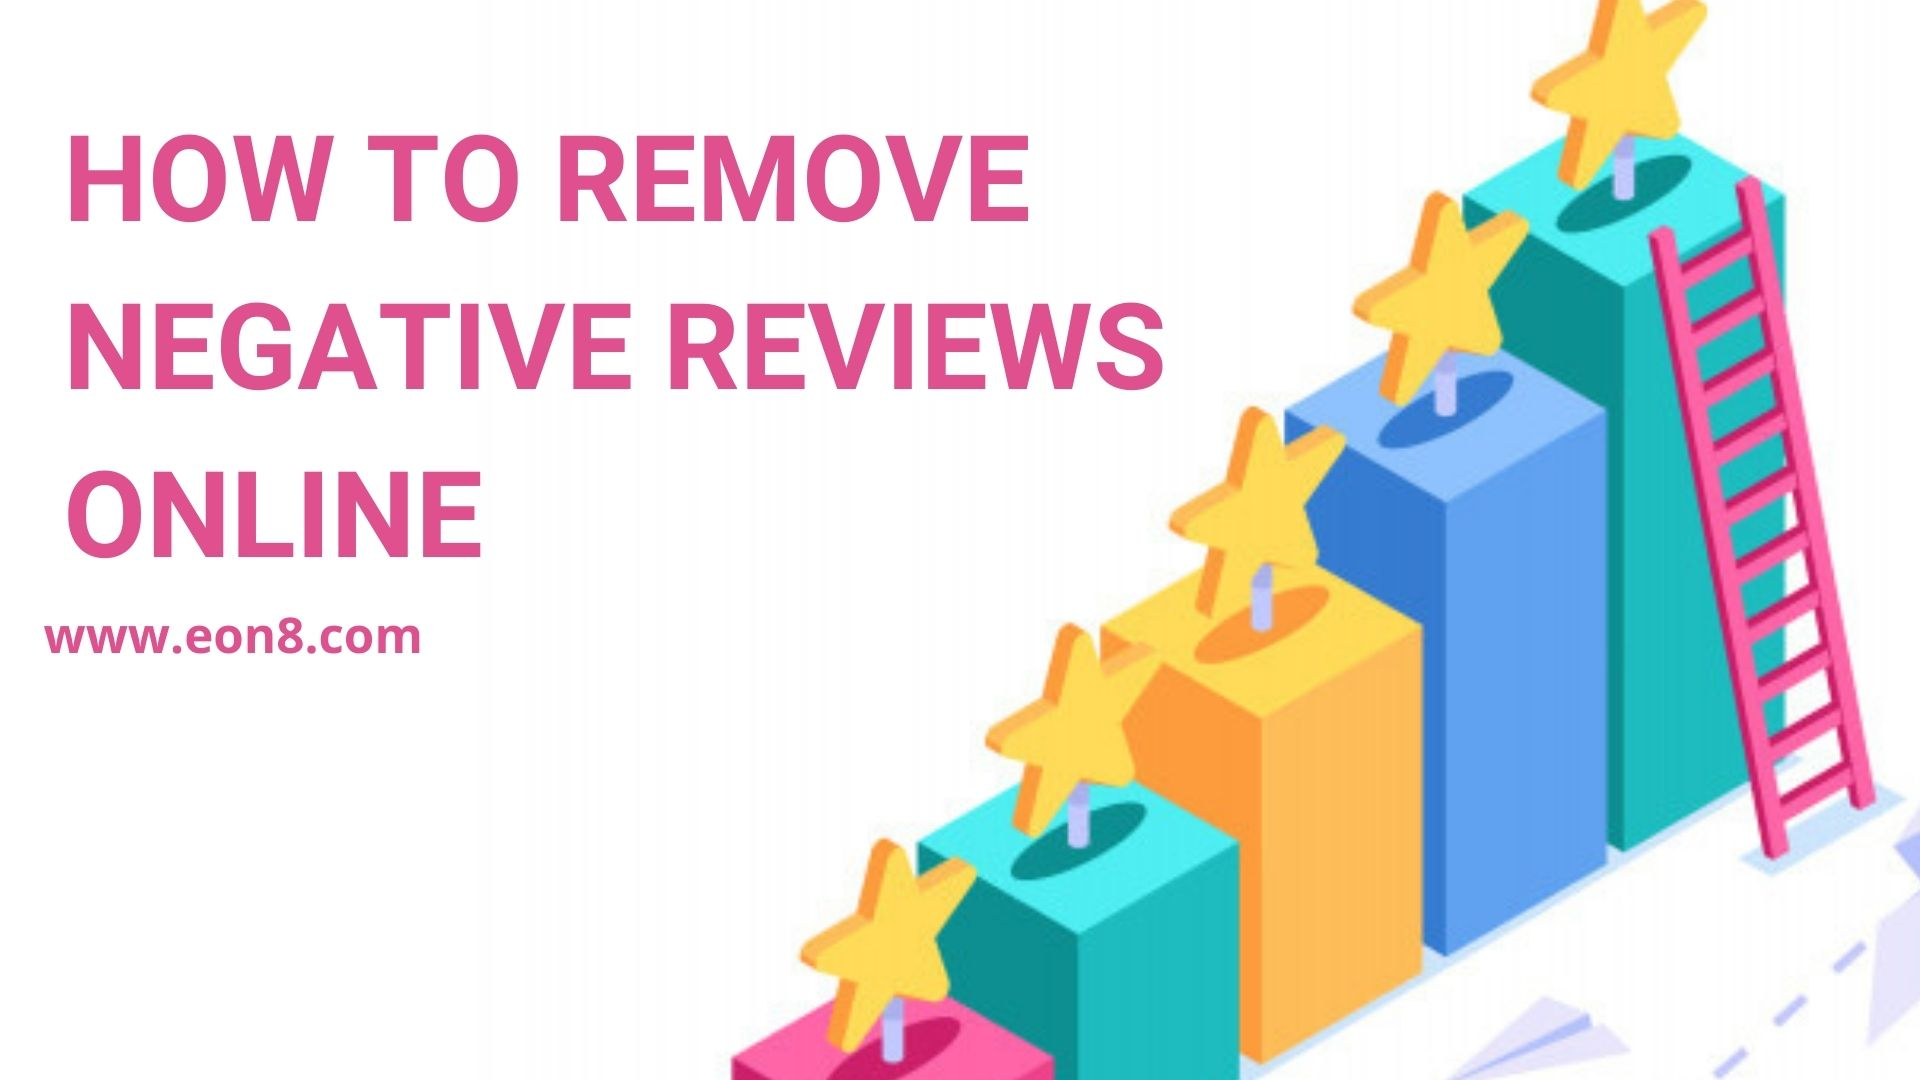 How To Remove Negative Reviews Online